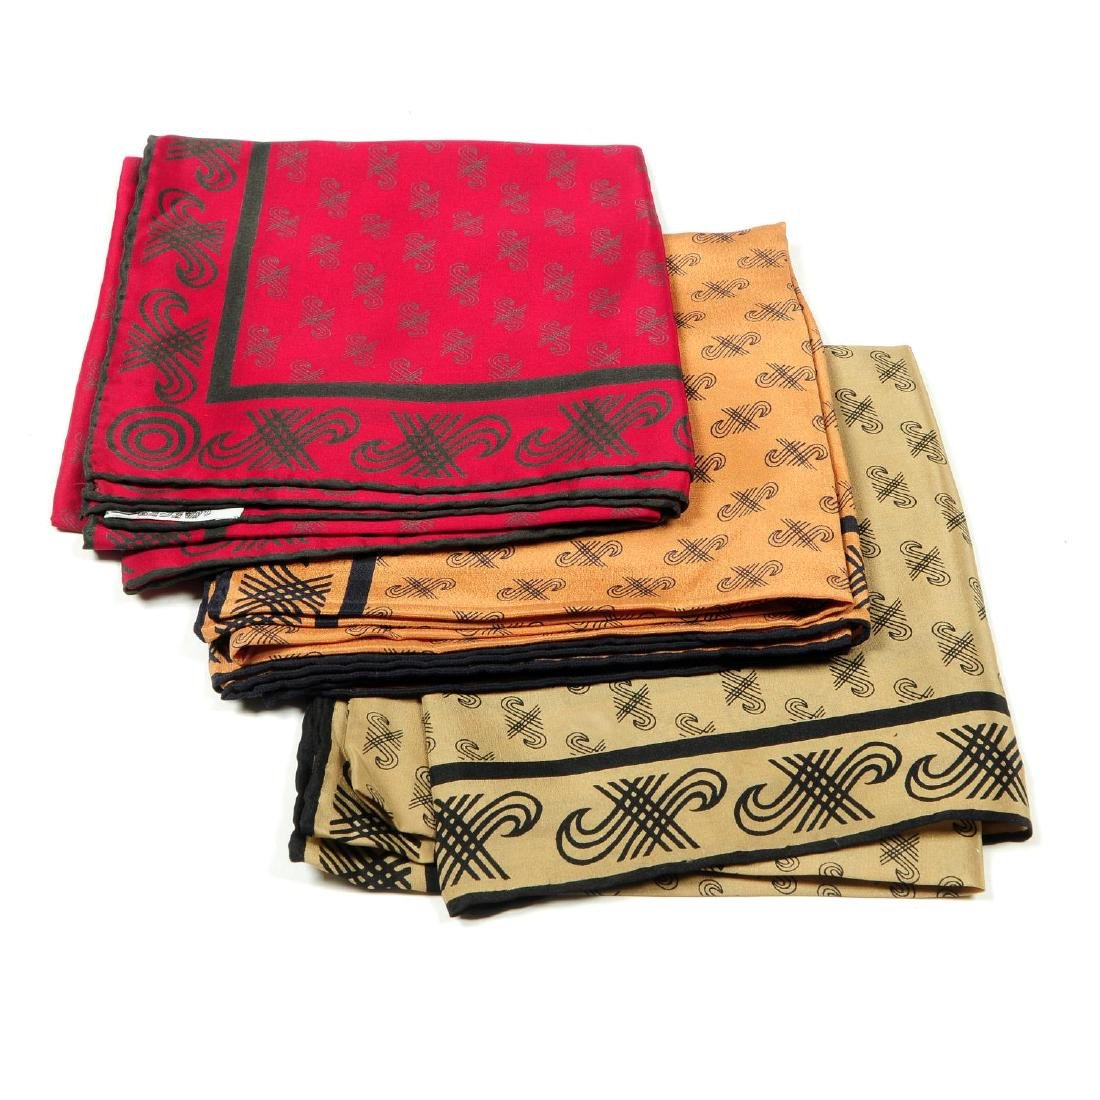 JAEGER - a selection of nine silk scarves. To include